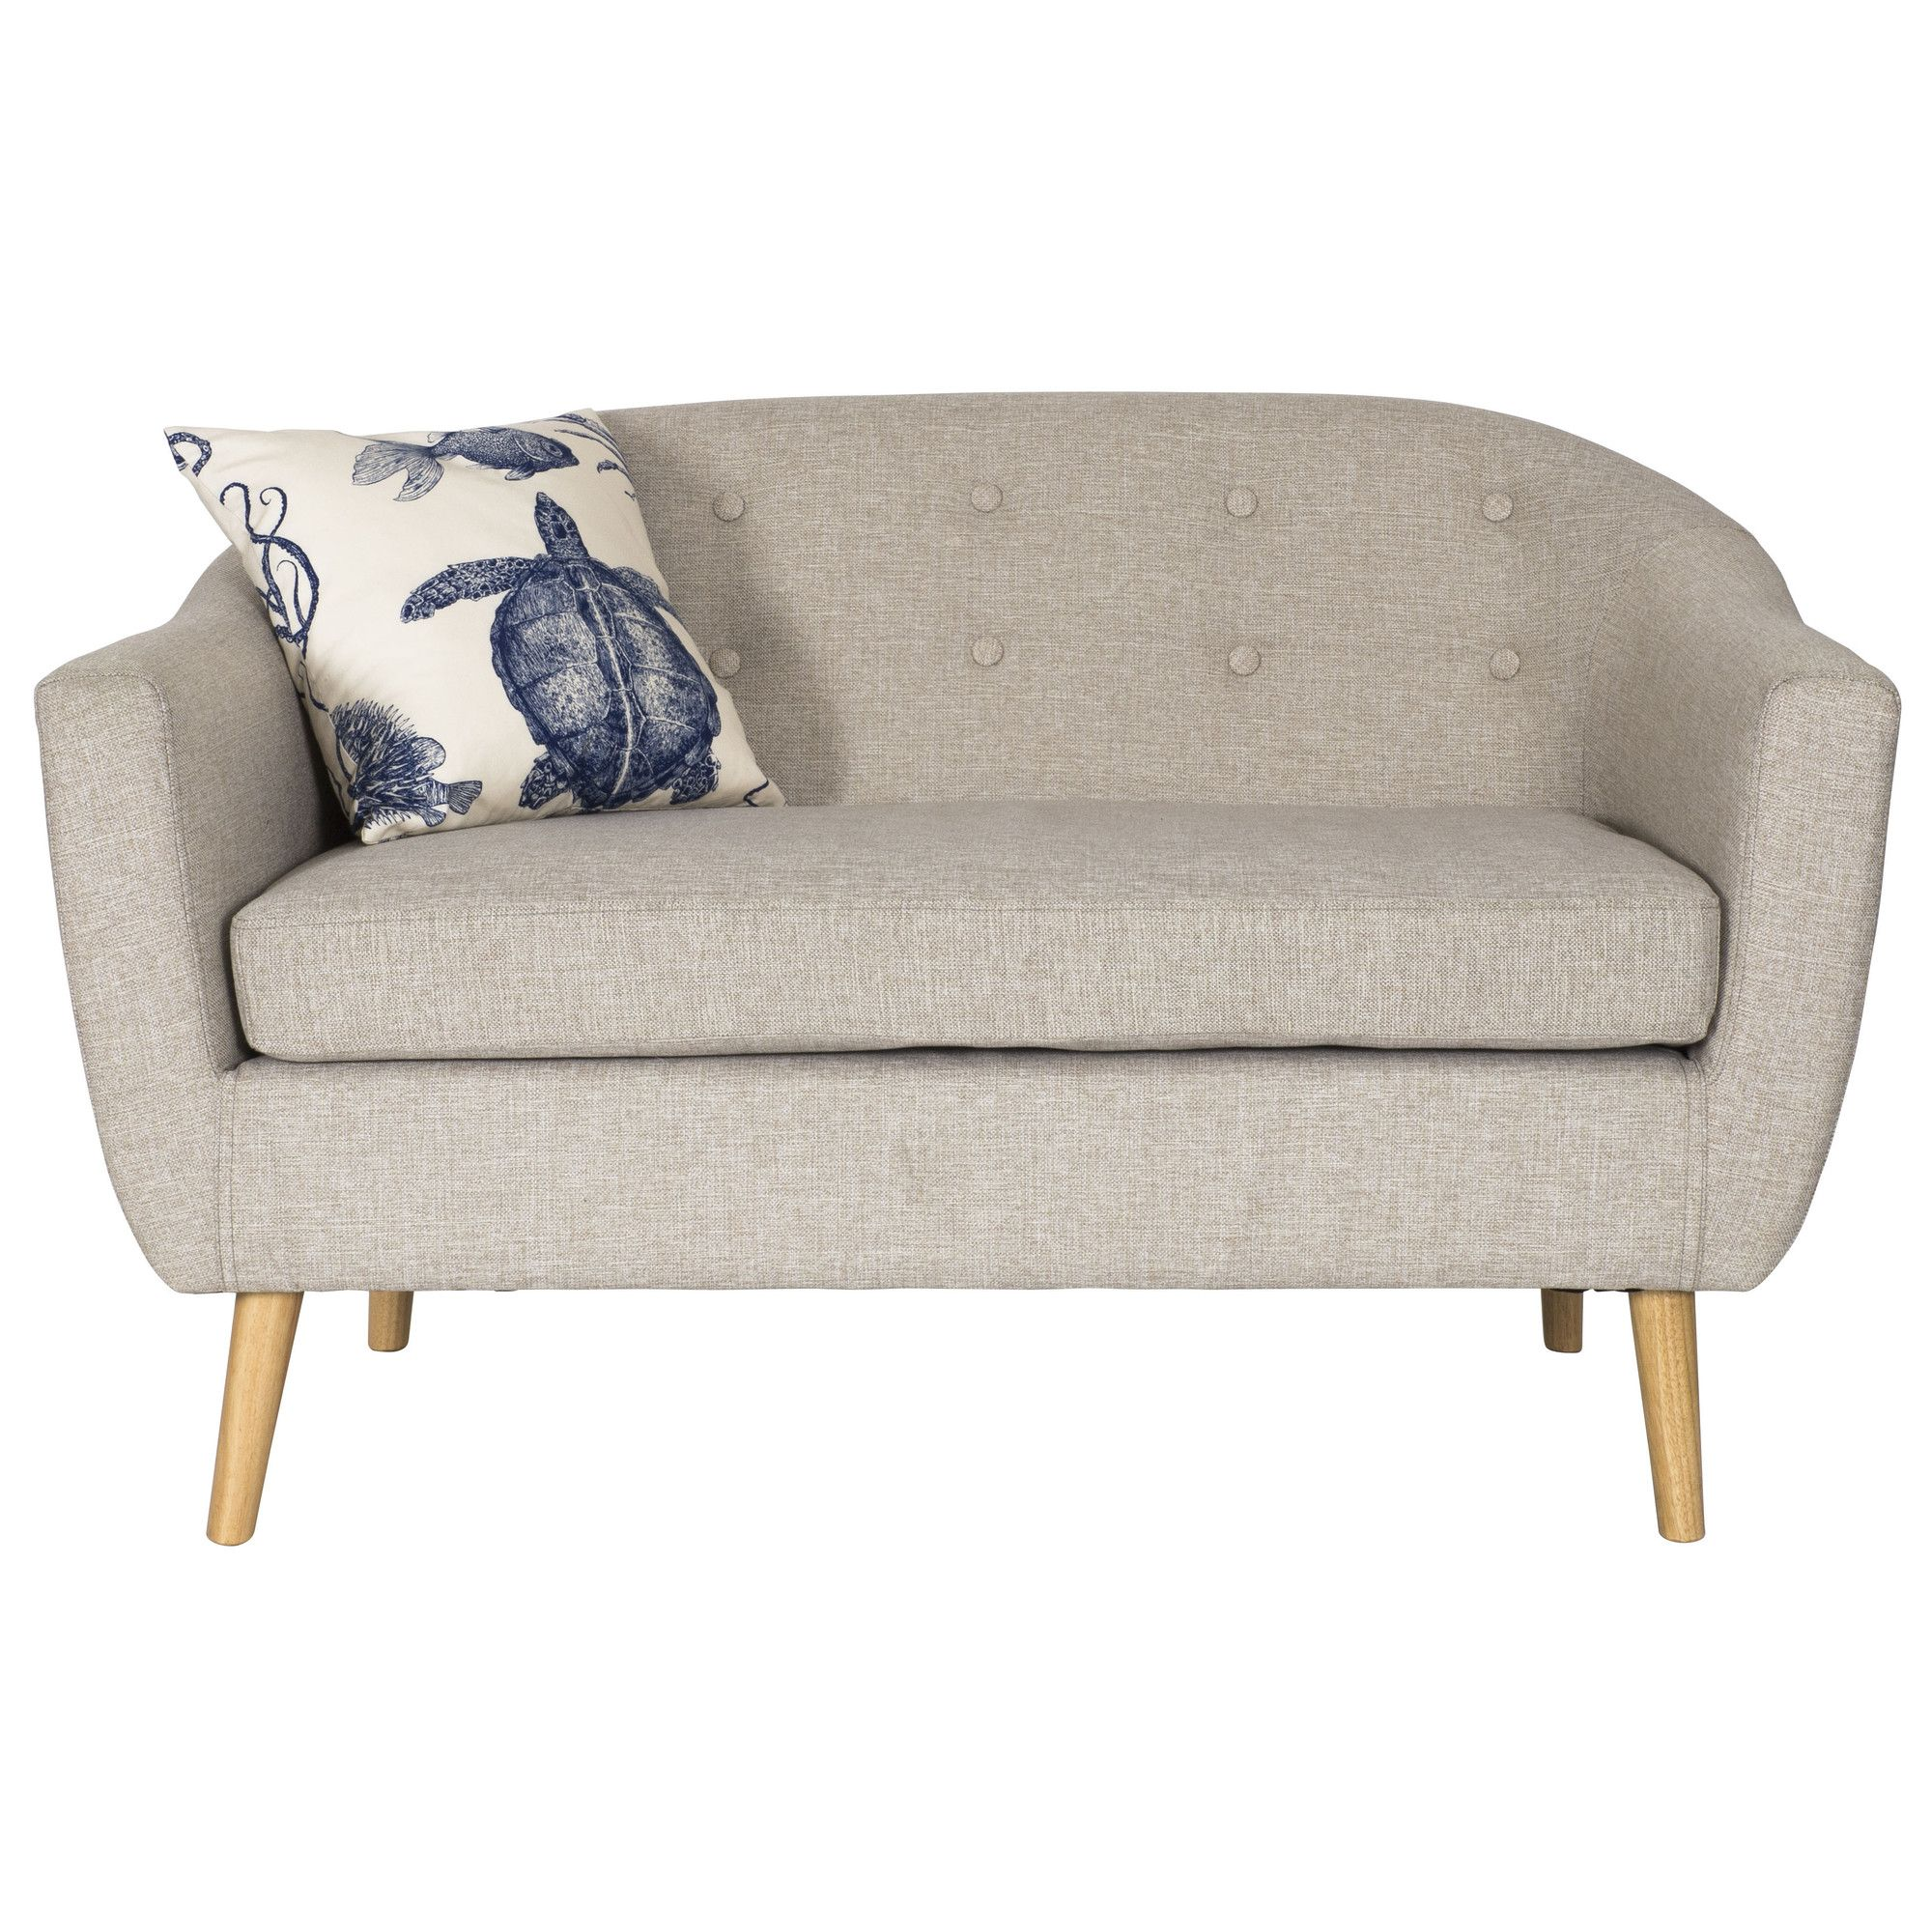 All Home Pedro 2 Seater Sofa & Reviews Wayfair UK